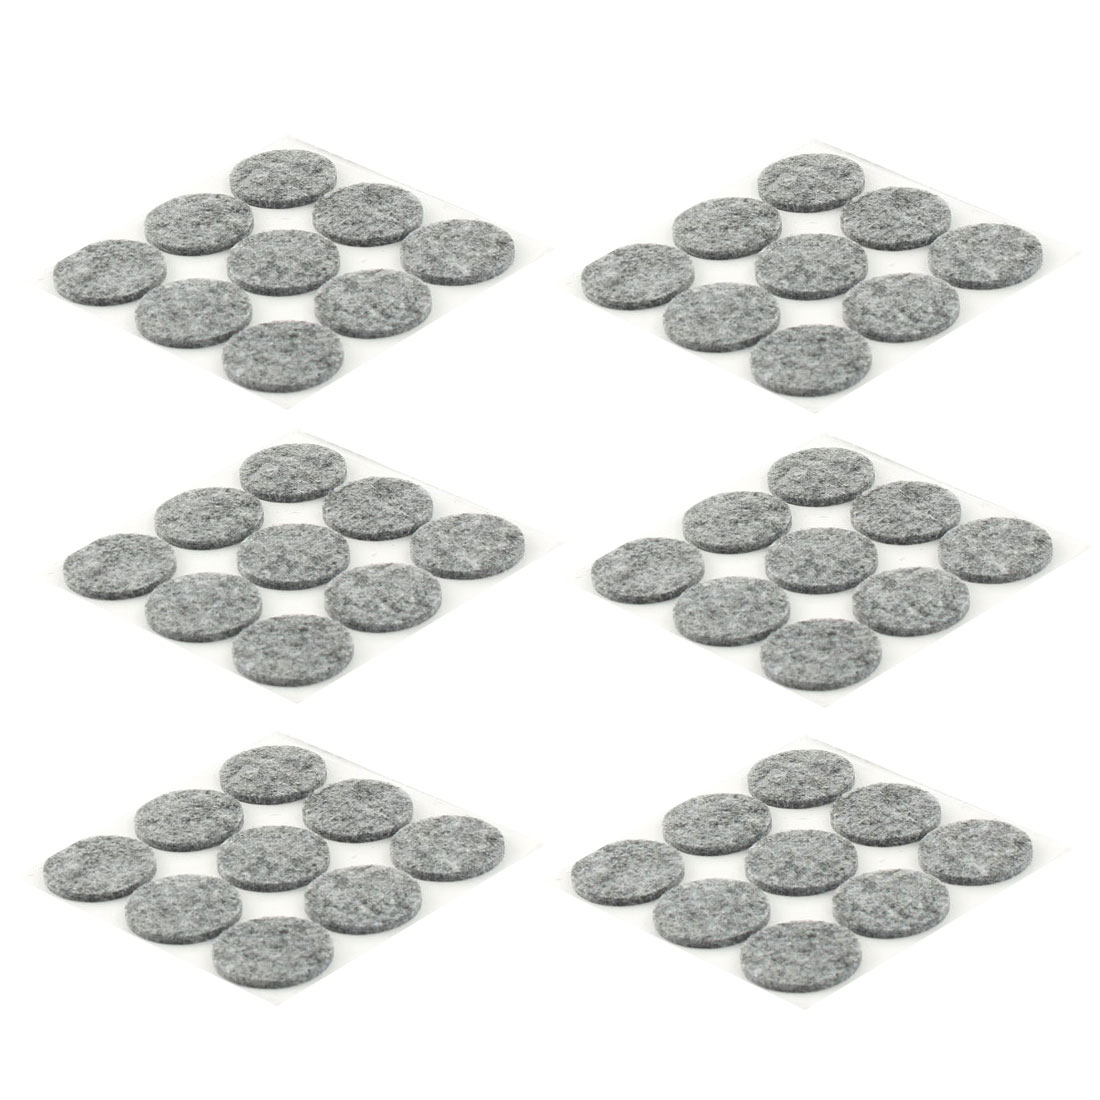 Home Office Self Stick Surface Protection Furniture Felt Pads Mats Gray 25mm Dia 36pcs